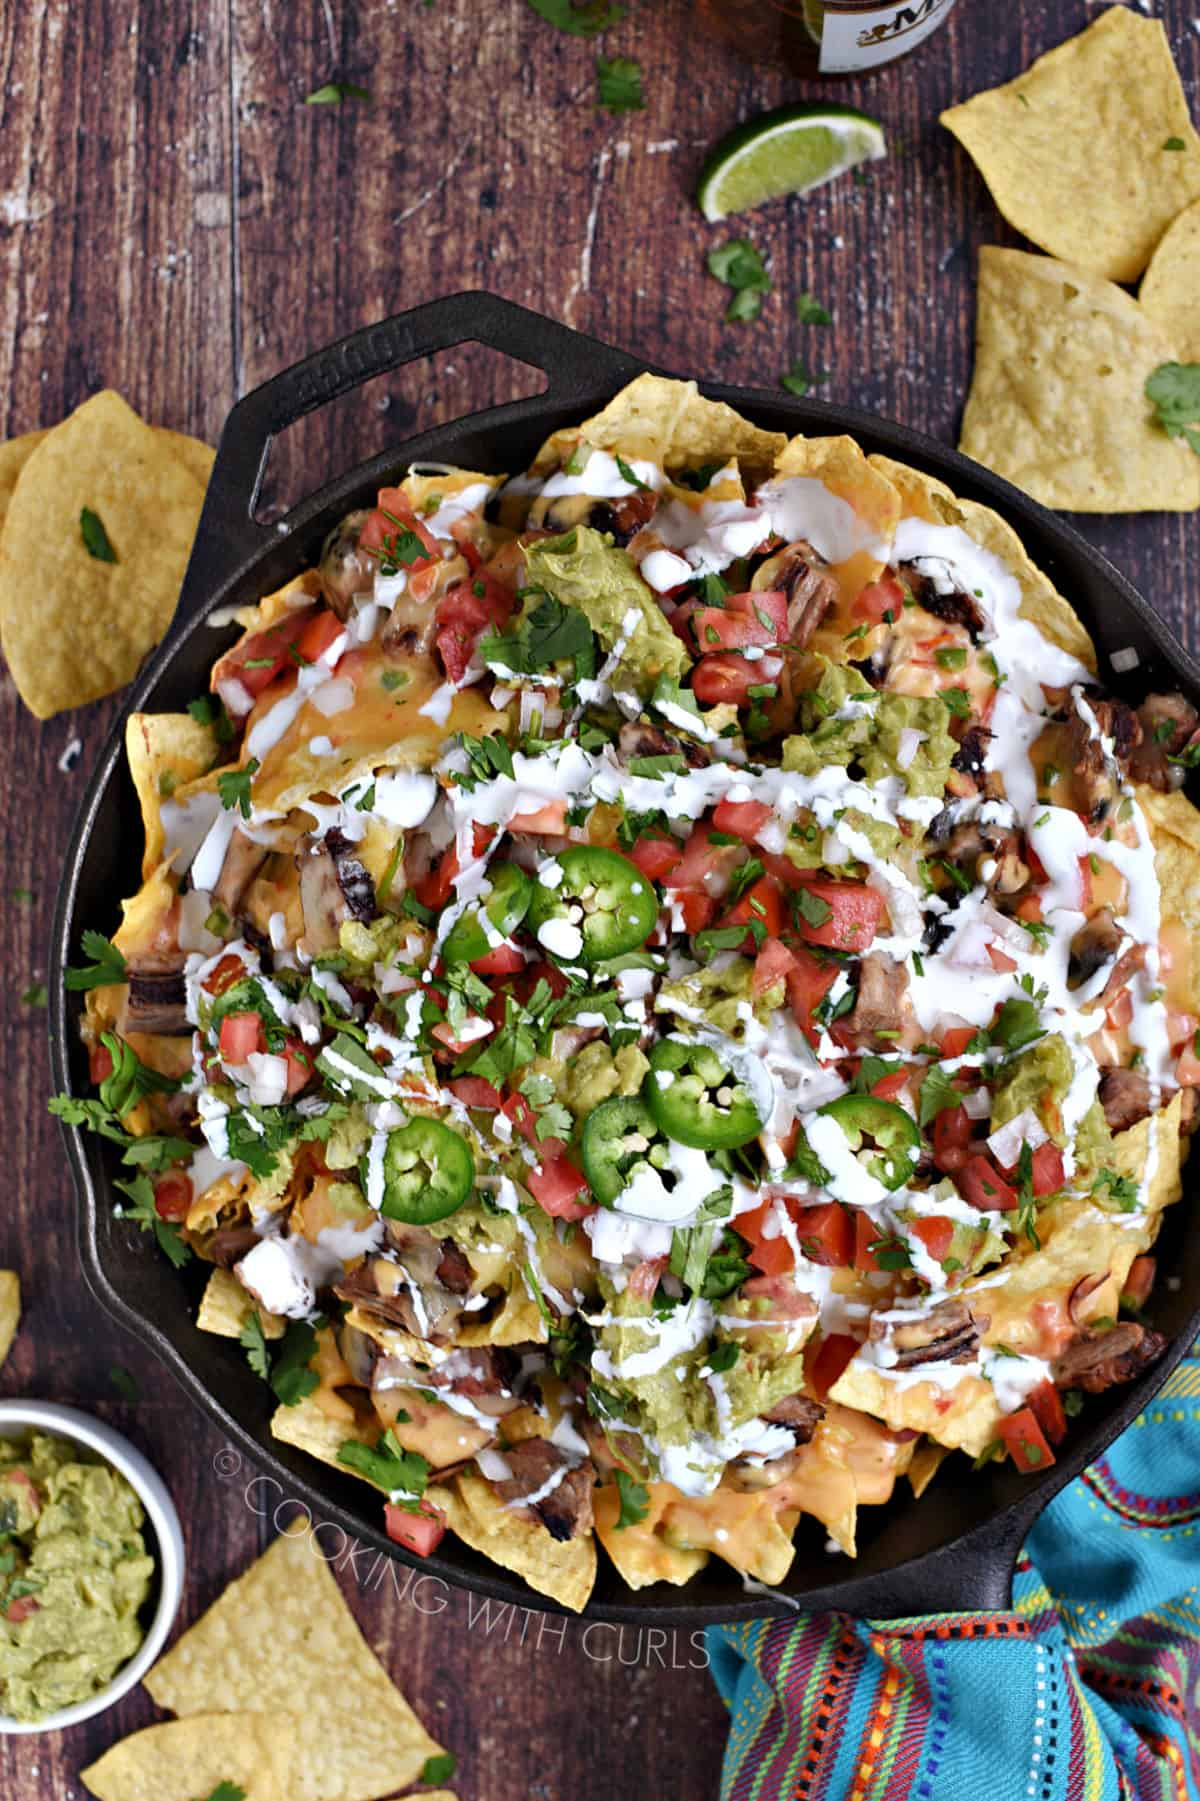 Looking down on Carne Asada Nachos in a cast iron skillet topped with crema, jalapeno and guacamole with chips scattered around and a bowl of guacamole in the background.